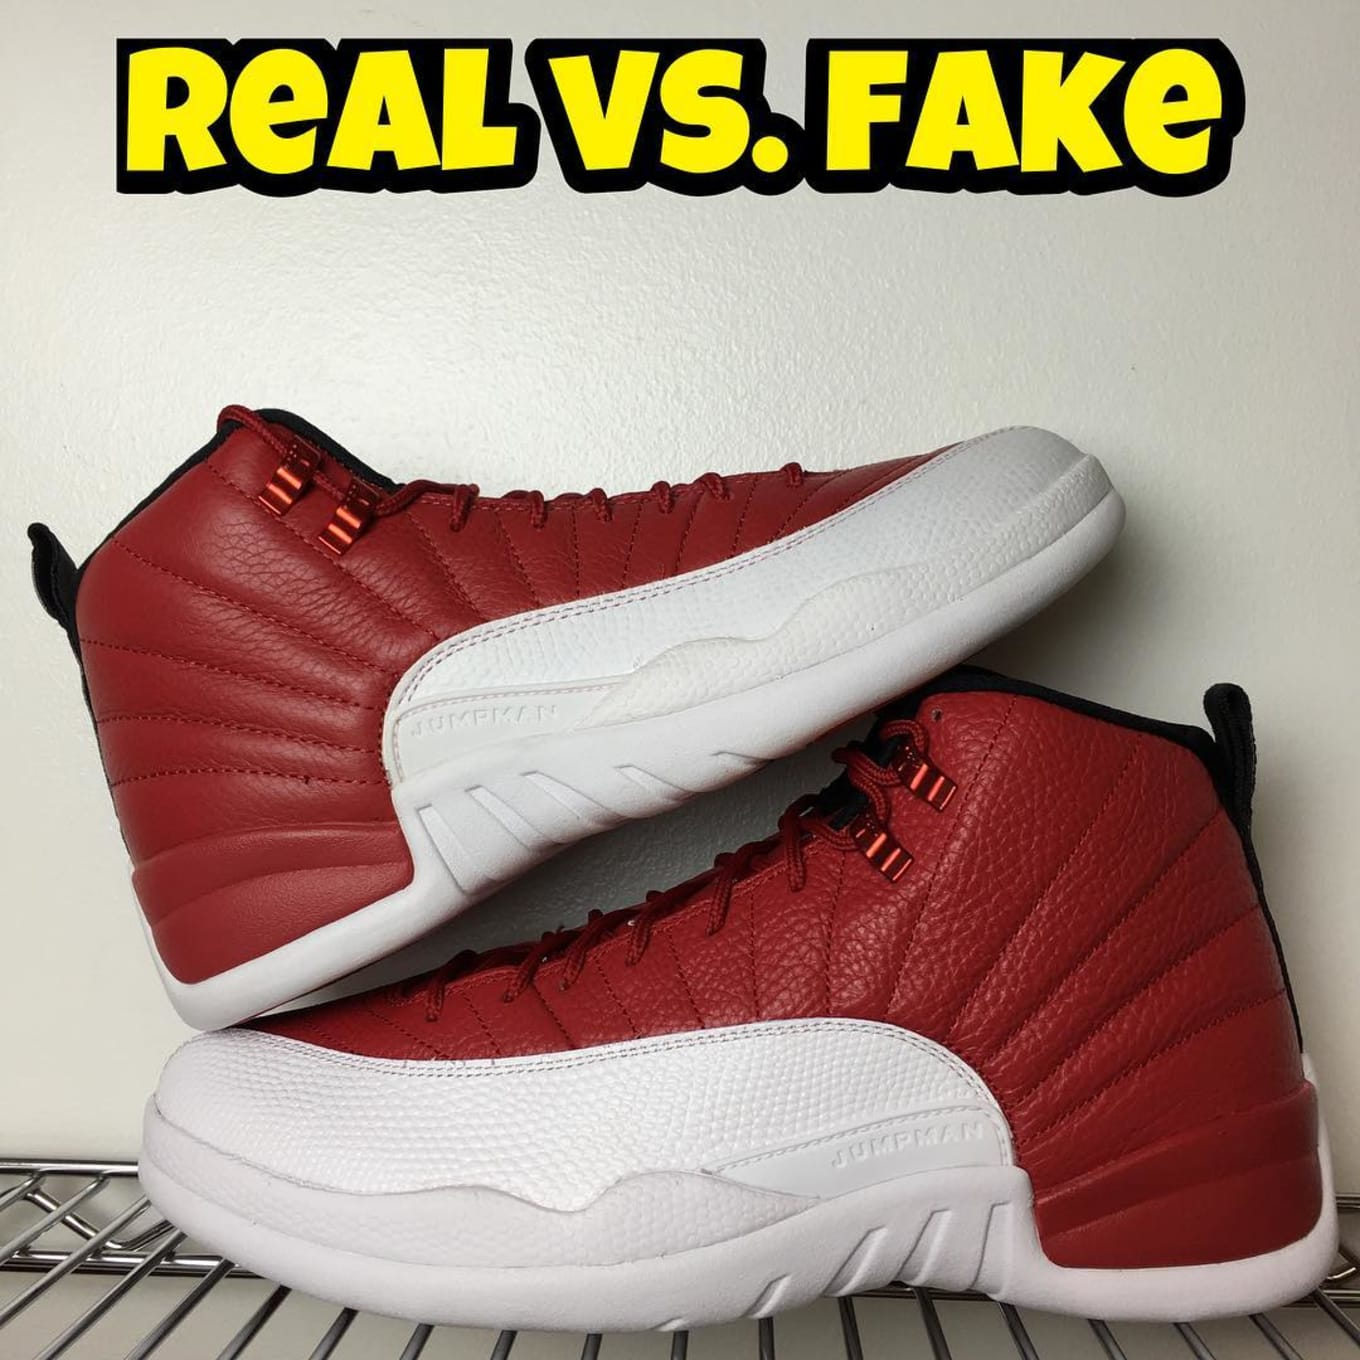 buy popular 27cd9 5ae71 Air Jordan XII 12 Gym Red Real Fake Legit Check